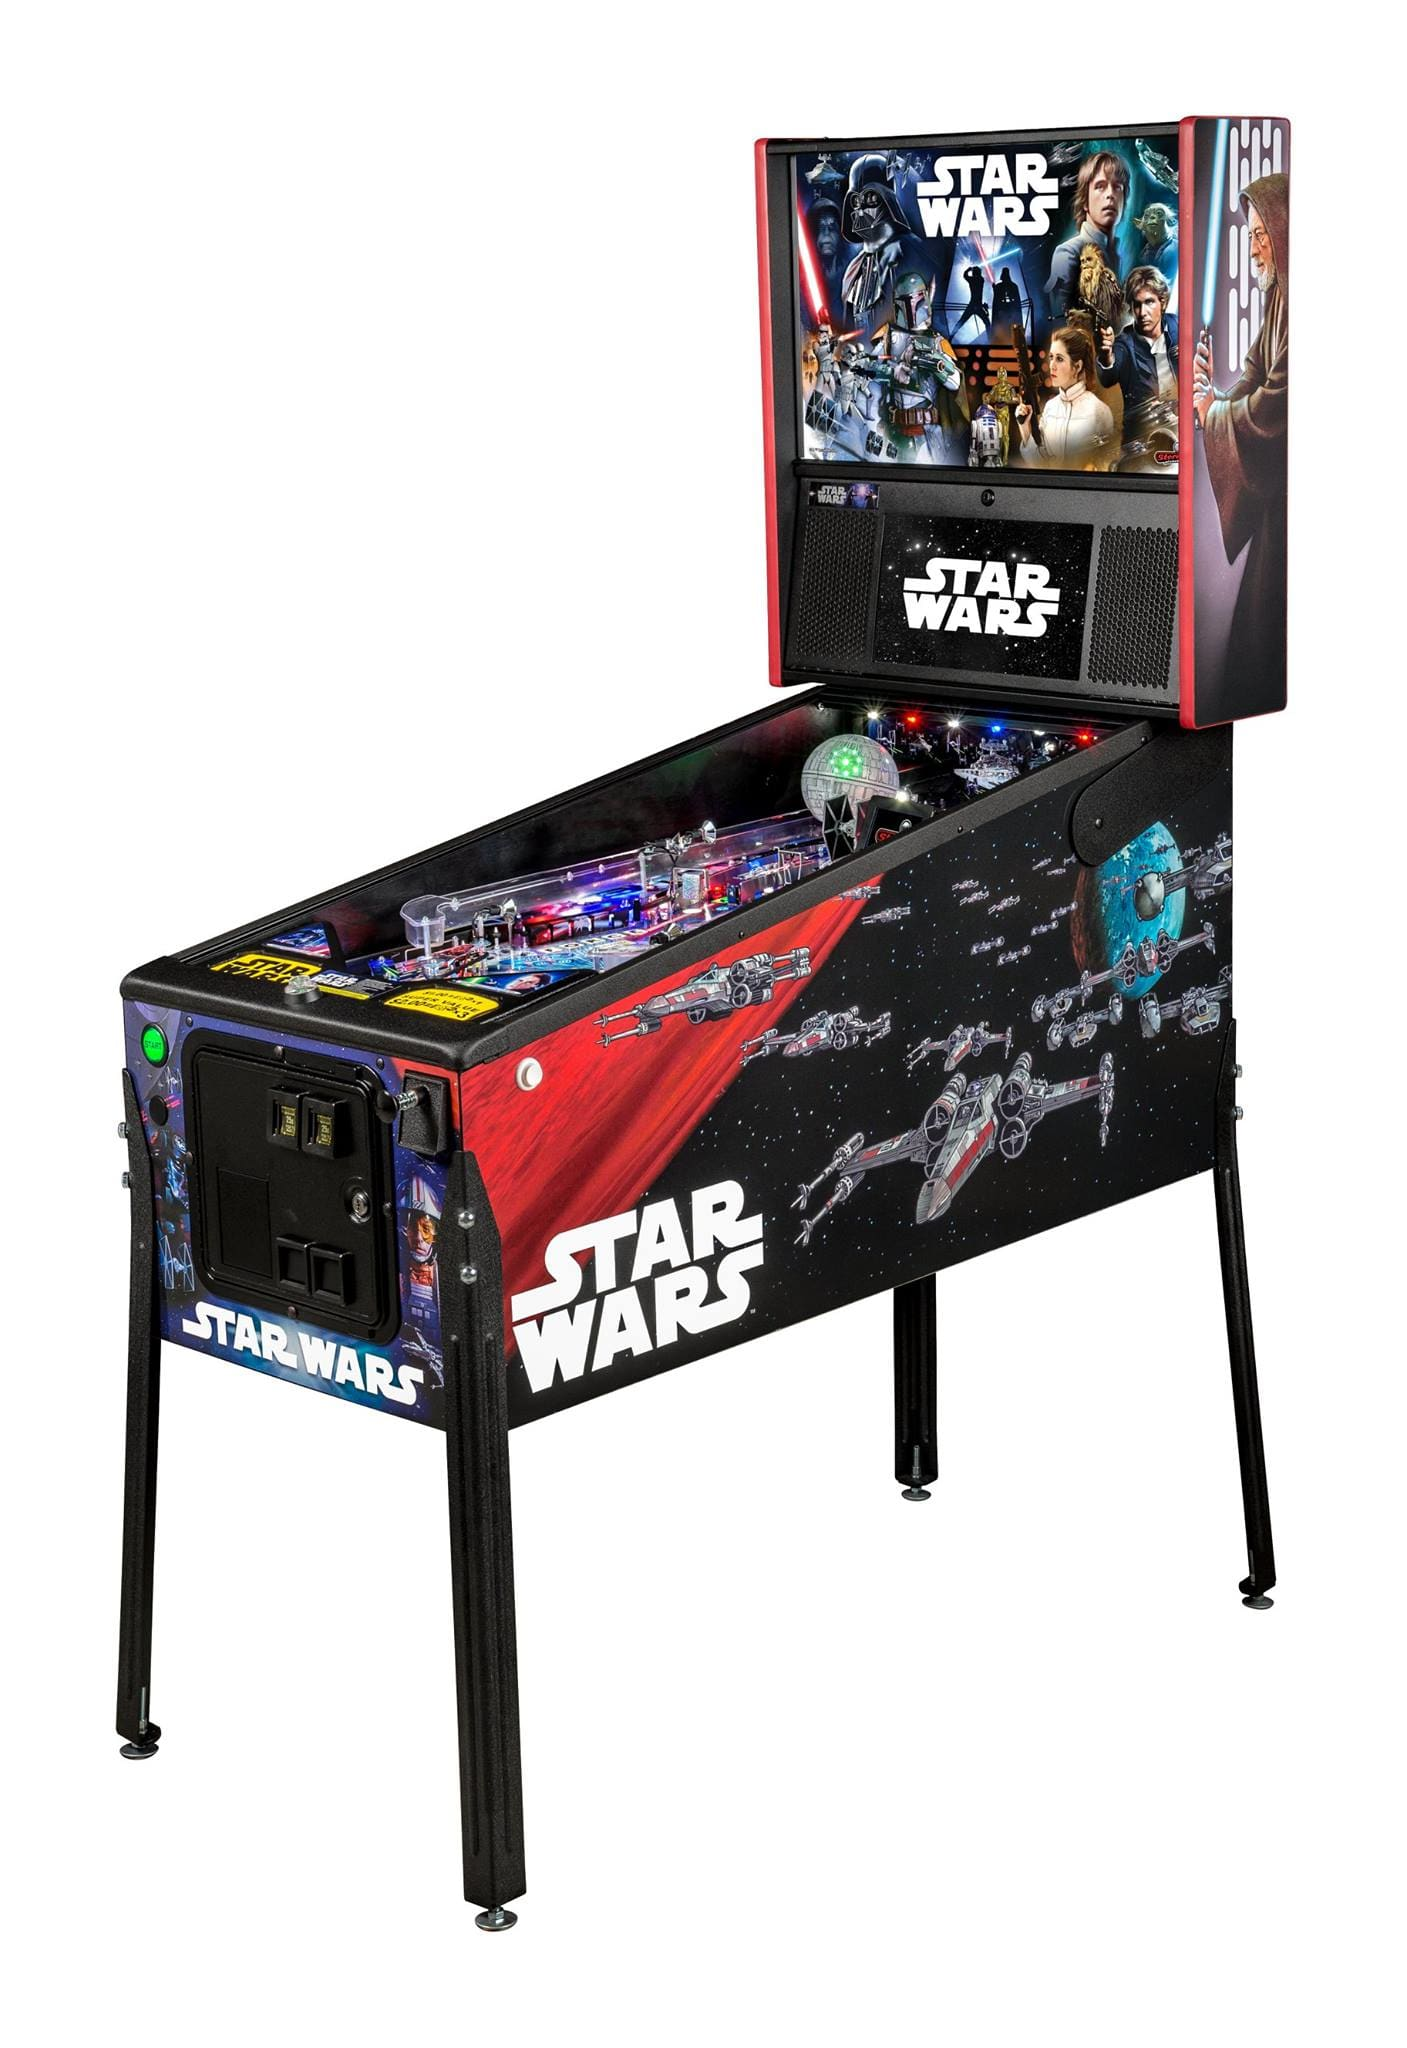 Star Wars Pro Pinball Machine: Overview